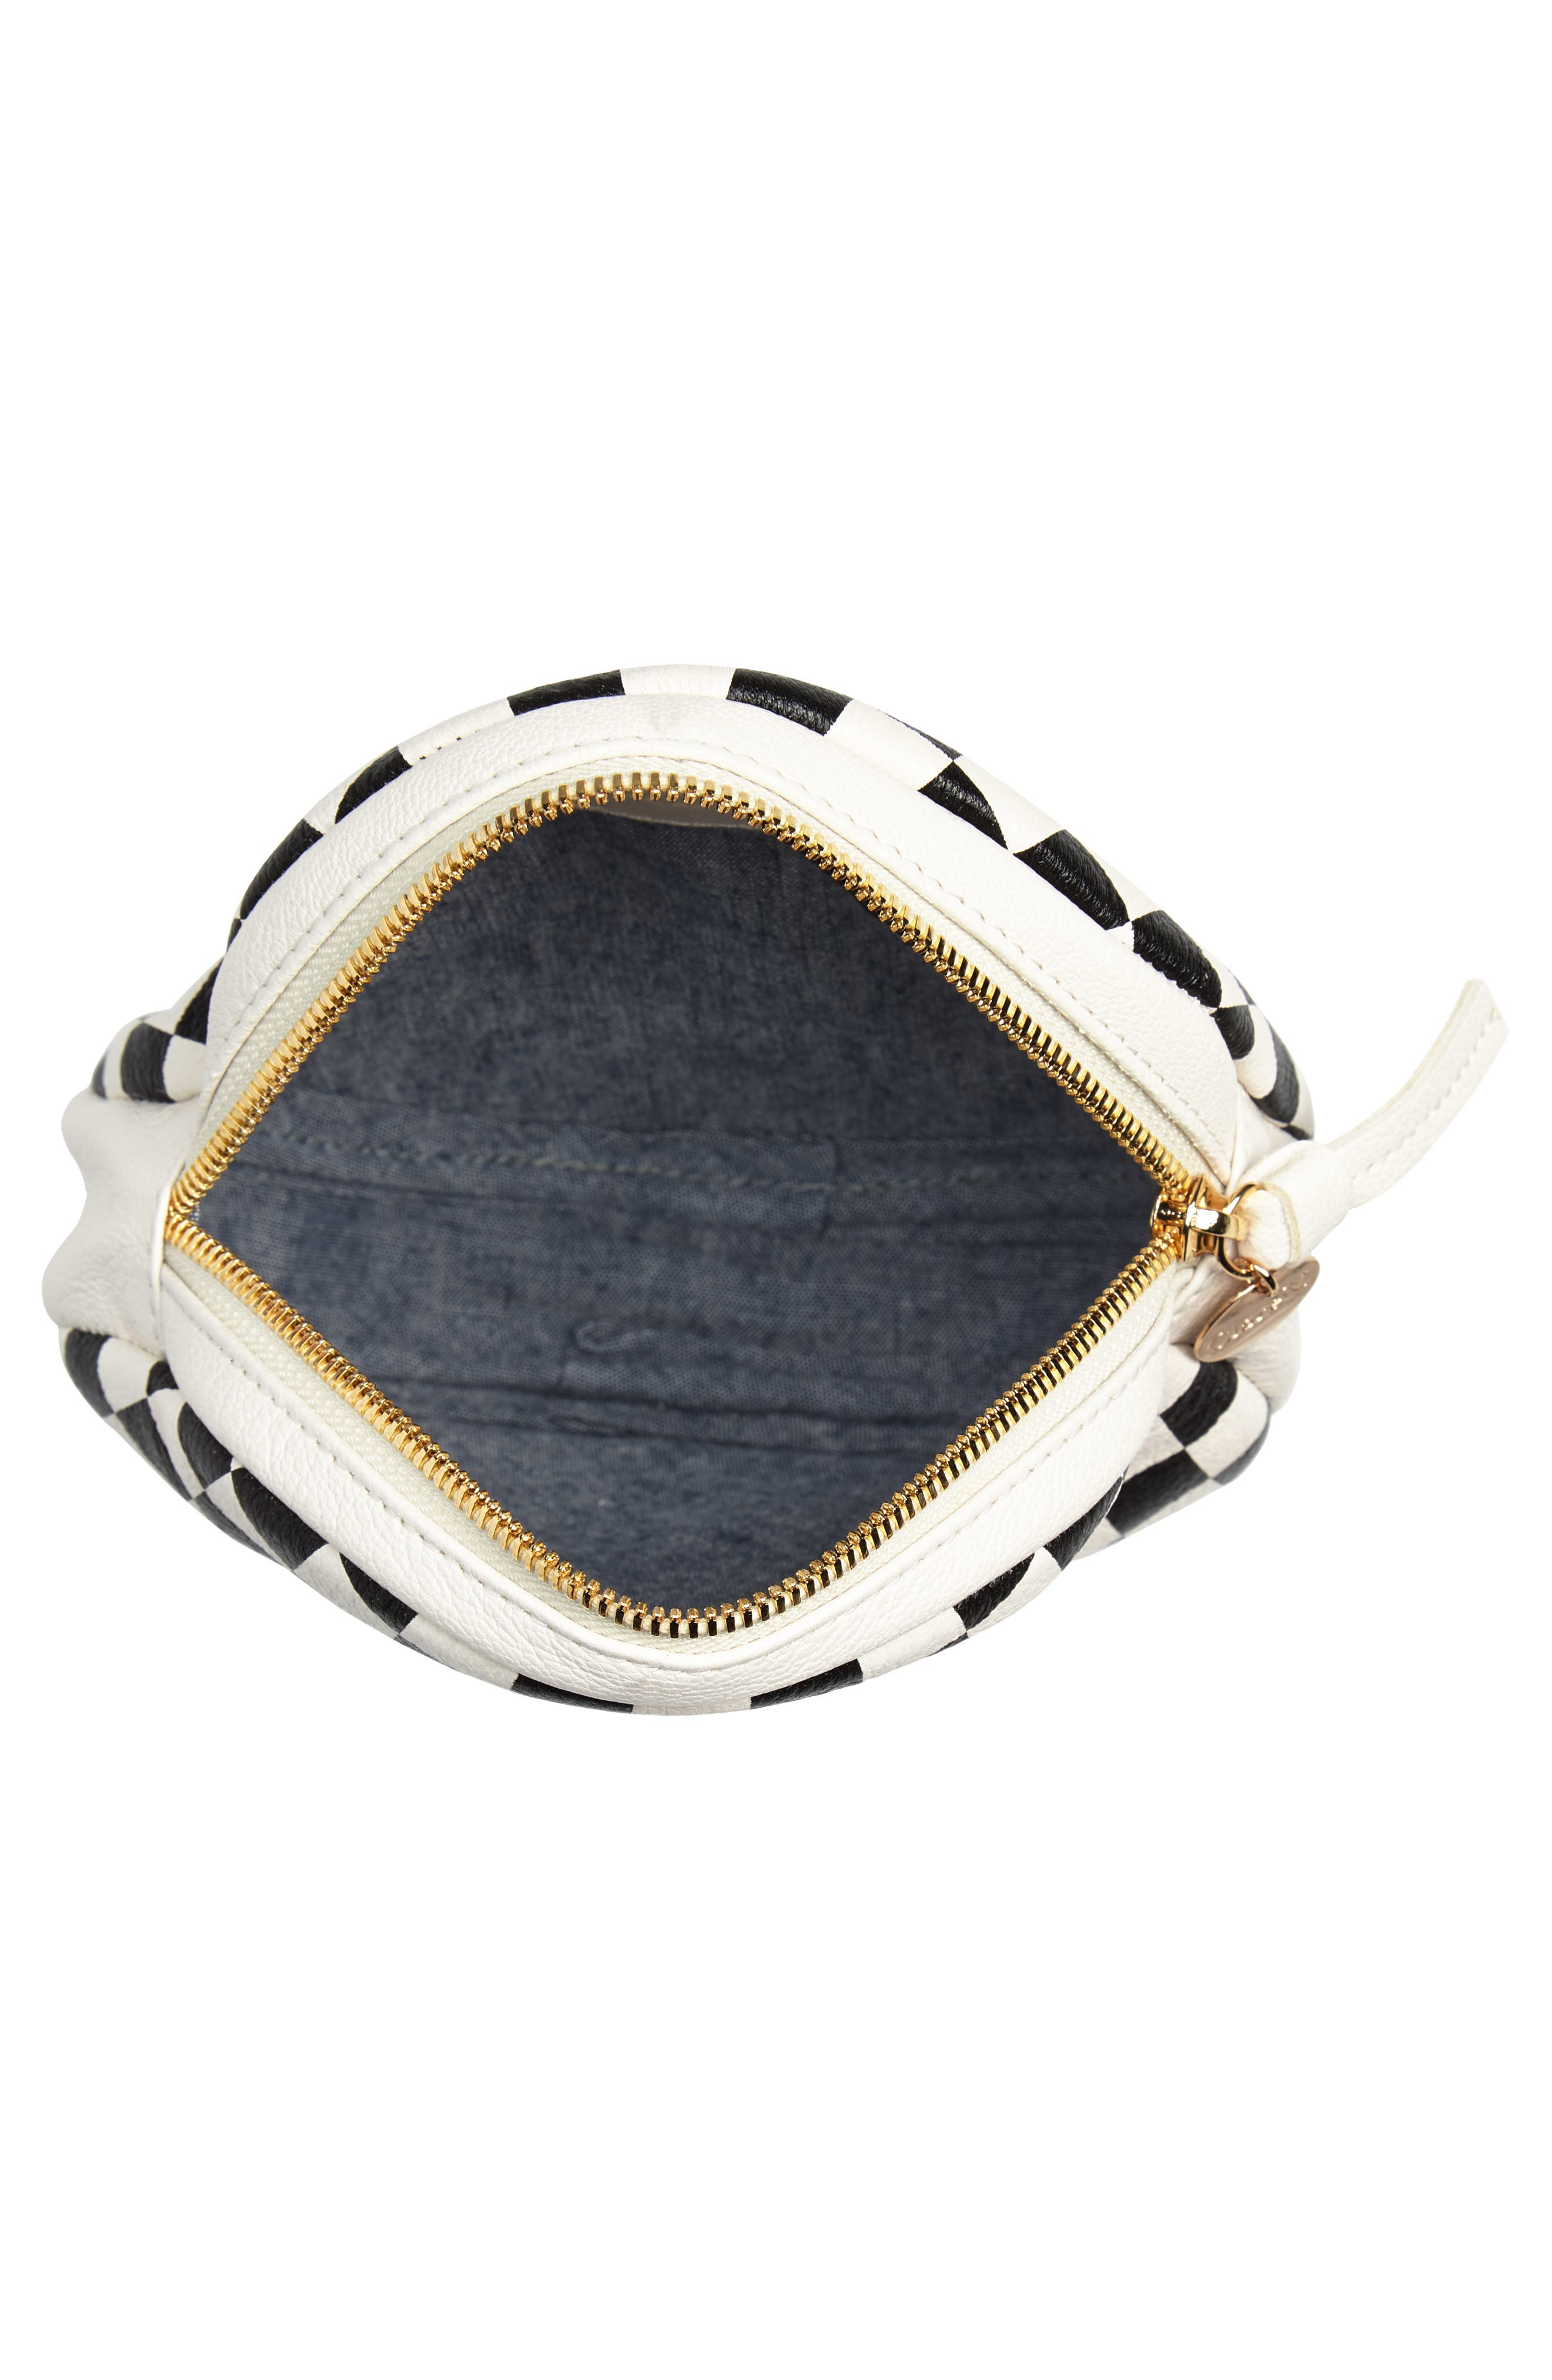 Checkered Leather Circle Clutch,                             Alternate thumbnail 4, color,                             001